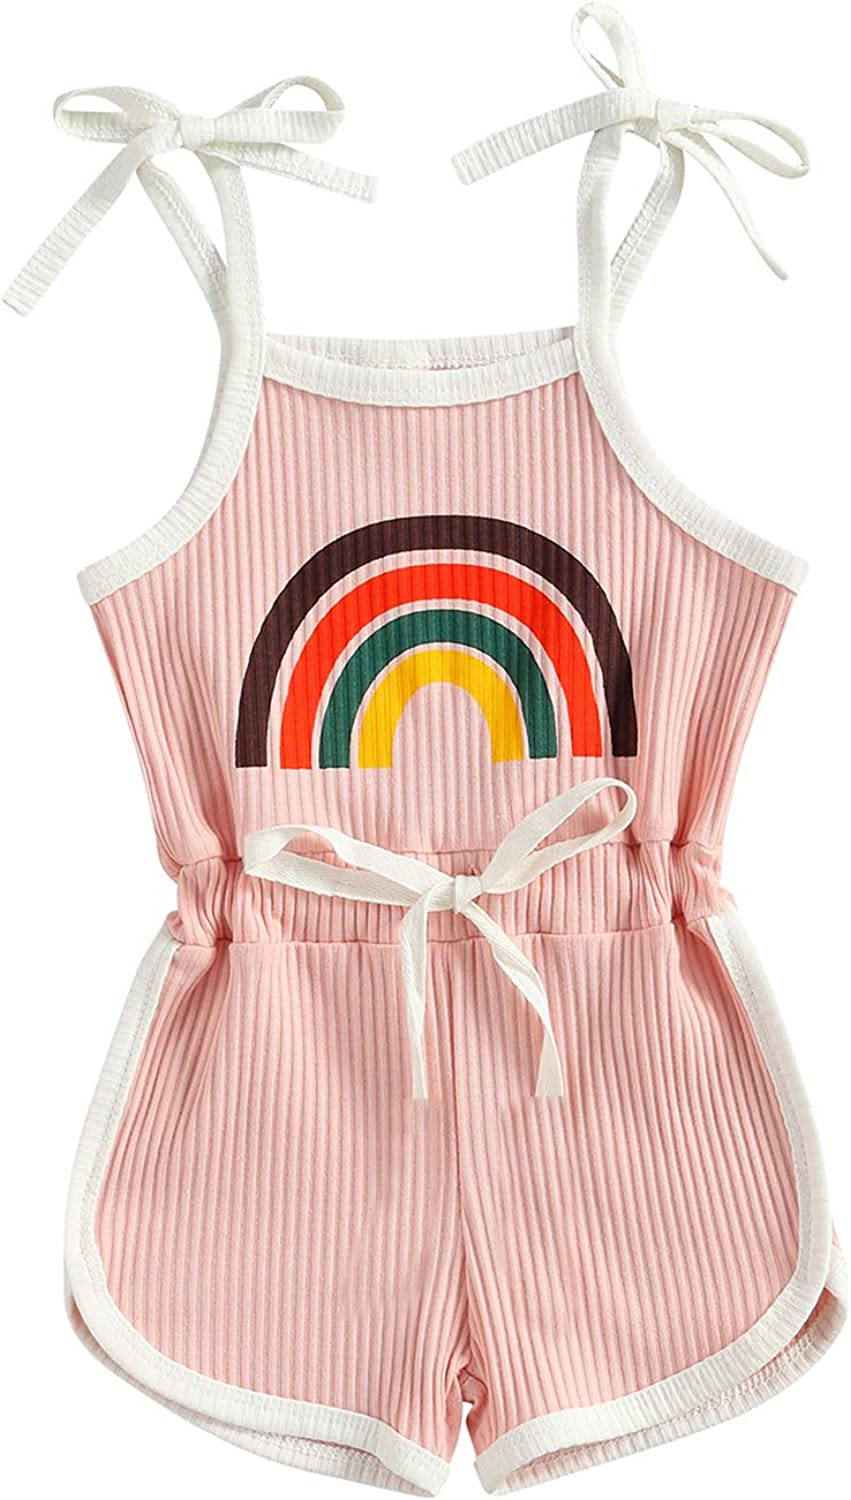 Toddler Baby Girl Straps Rainbow Romper Ribbe Max 56% OFF Piece Jumpsuit overseas One